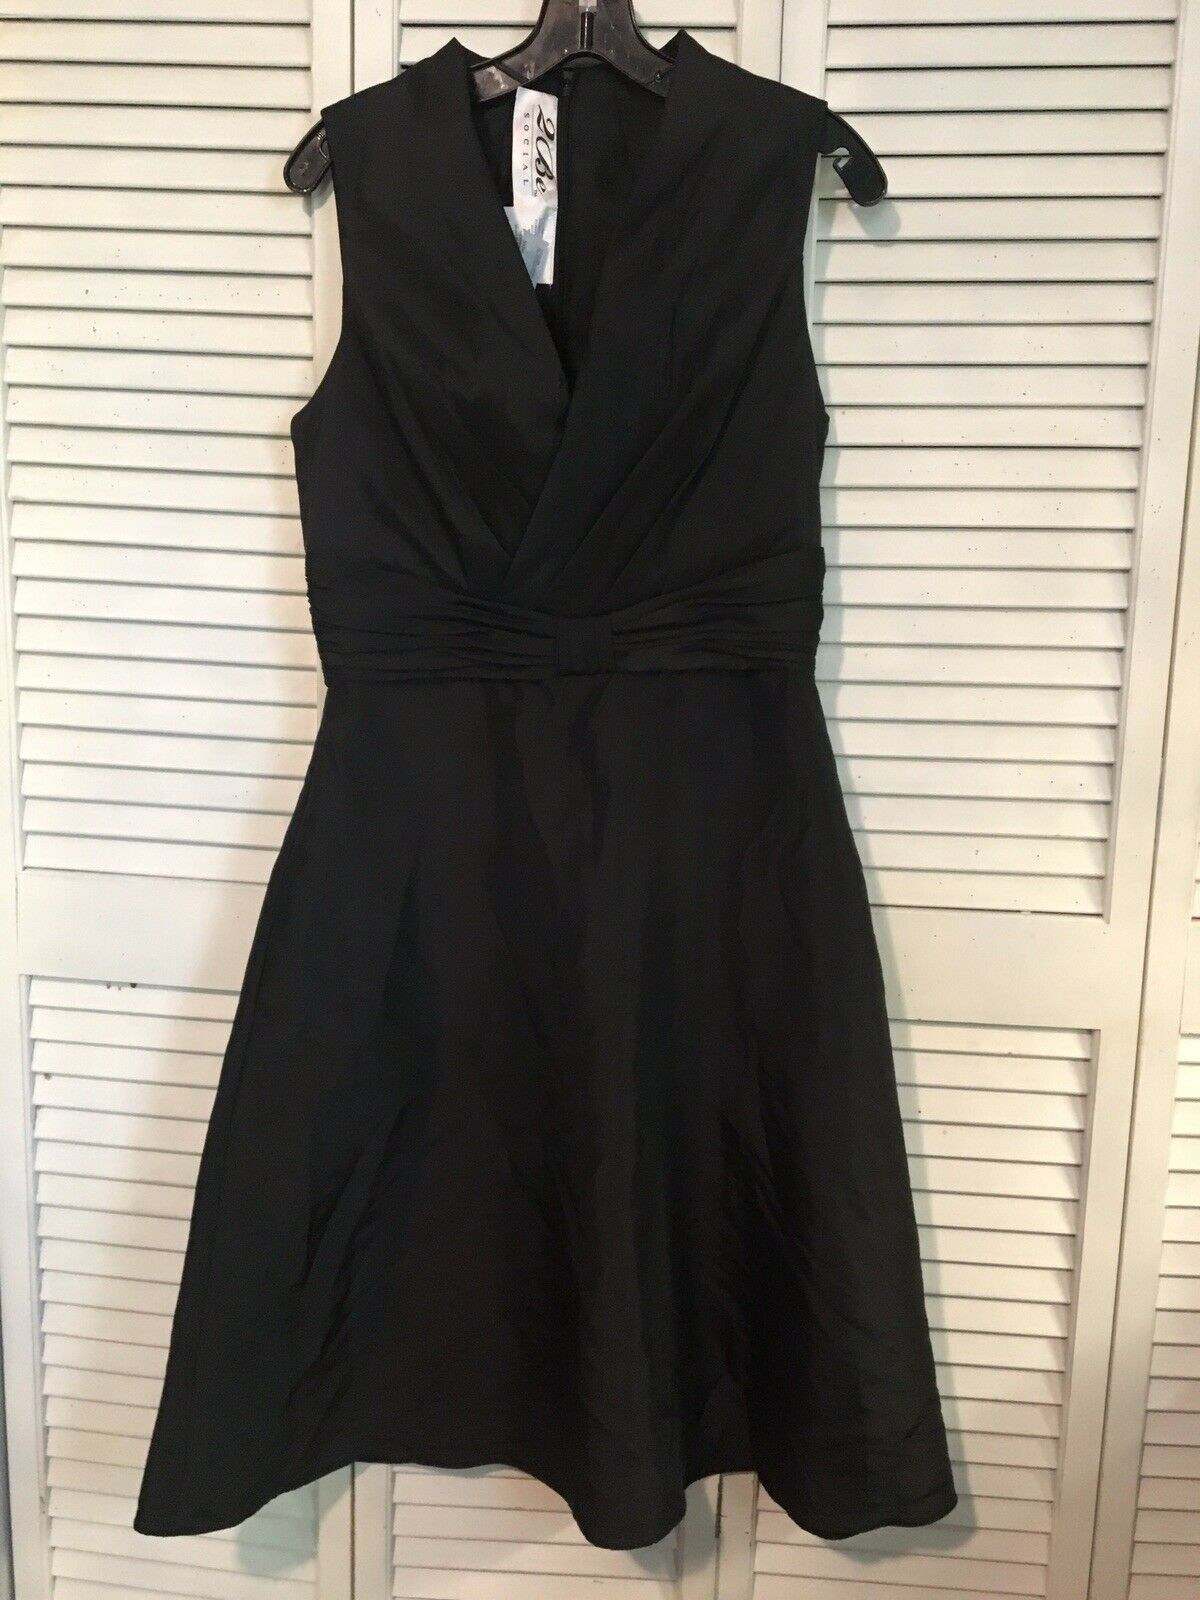 Prom/Bridesmaid gown black by 2 Be Social sleevless deep v neck Size 10